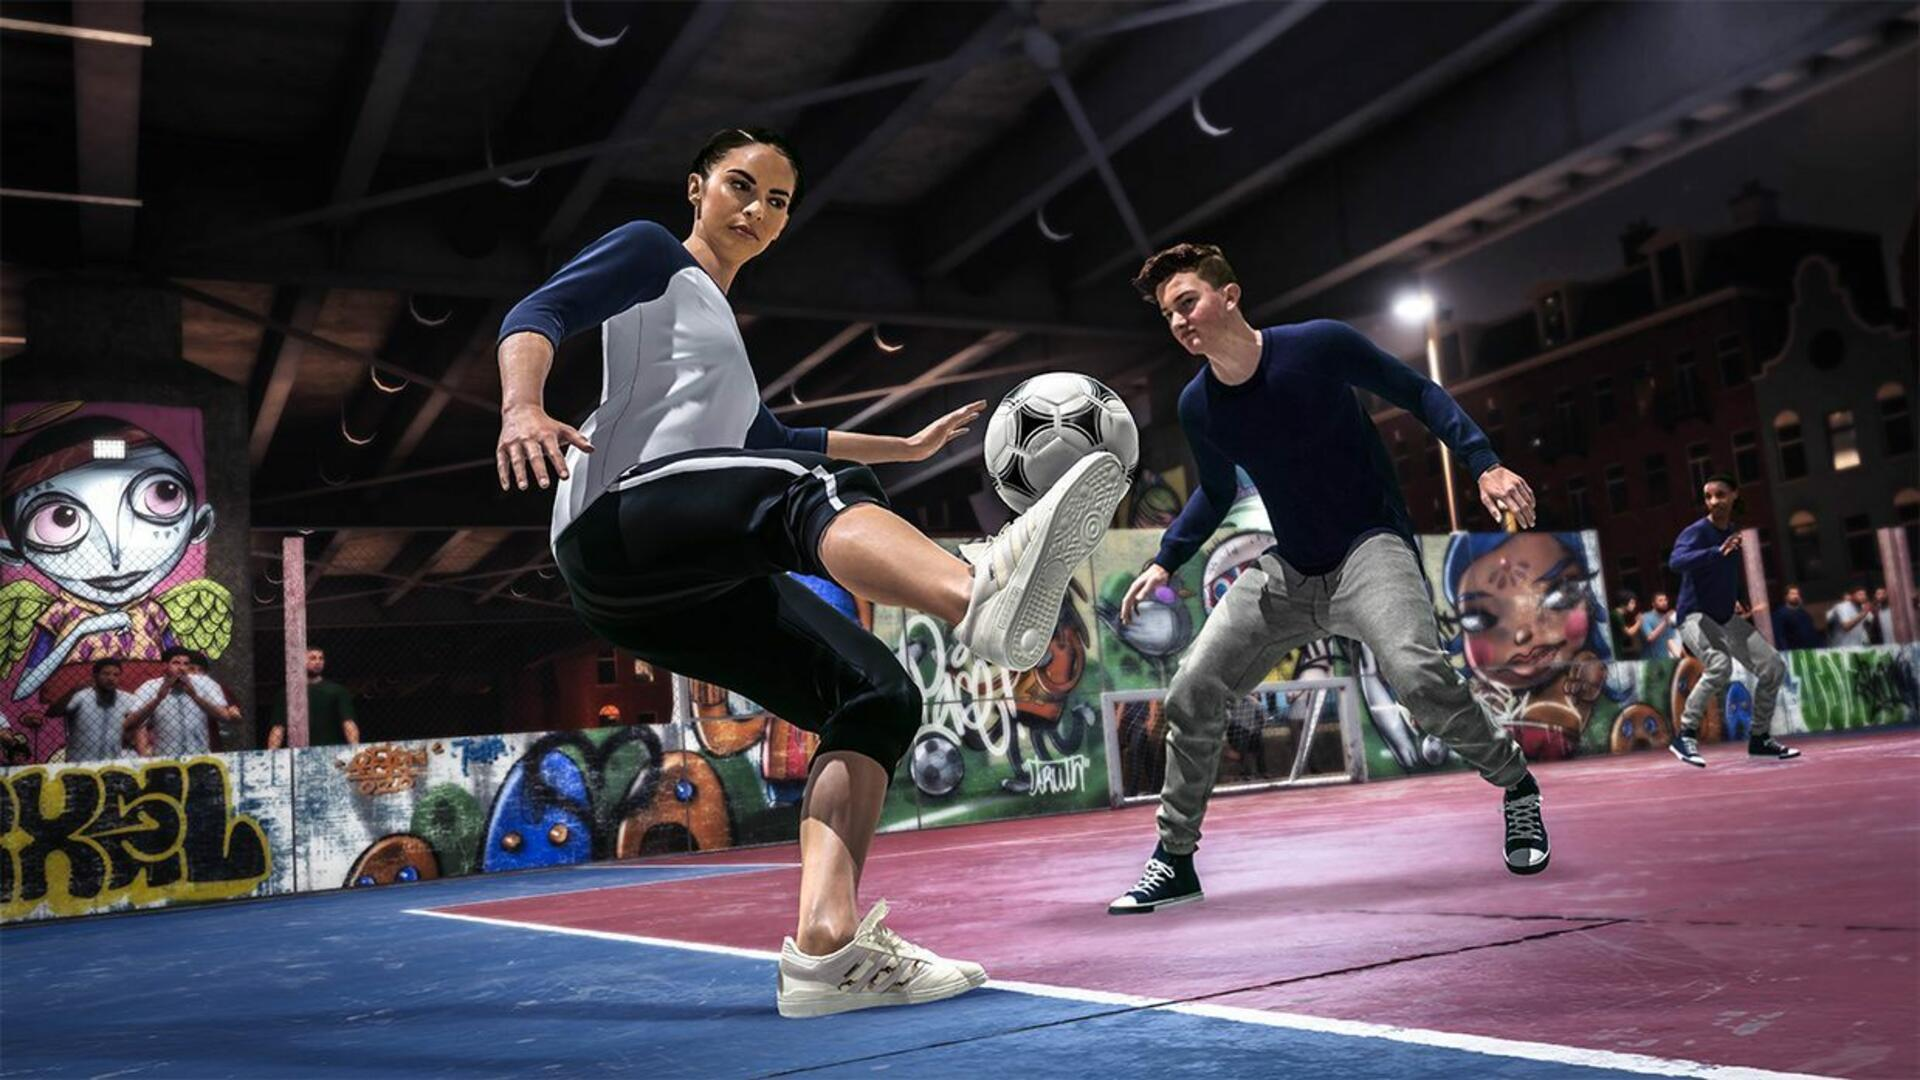 FIFA 20 Closed Beta is Live Today. Here are the Dates, Features, and How You Get In